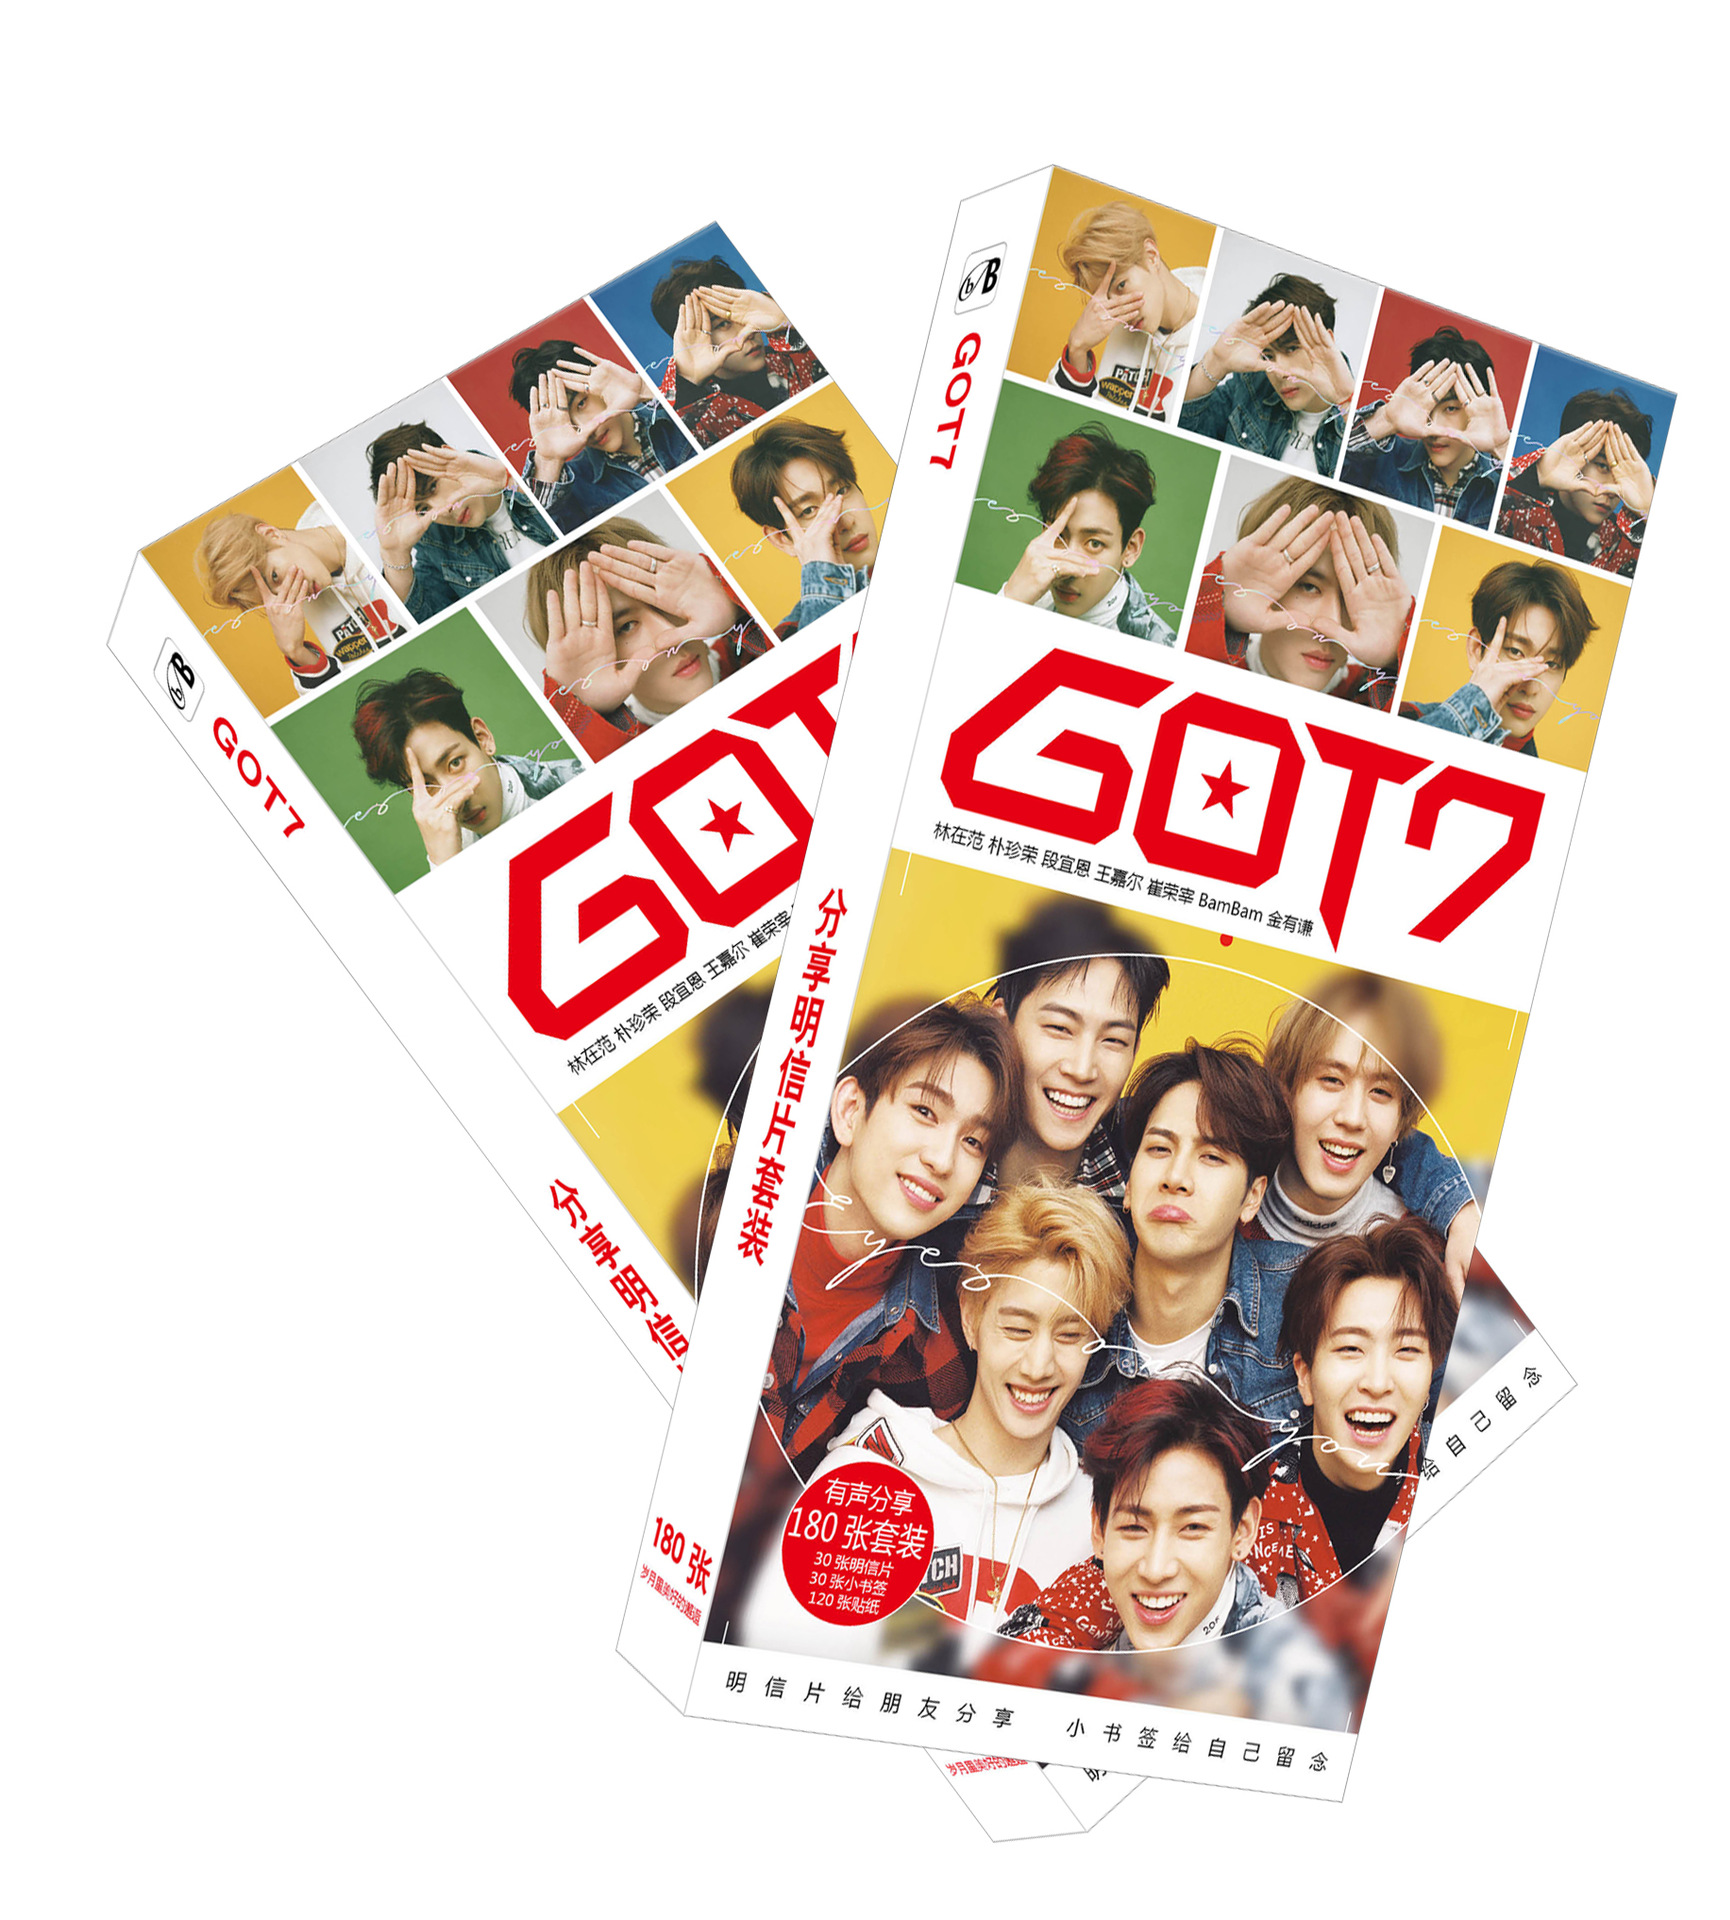 Kpop Got7 Jackson Wang Fanart Postcard Post Cards Sticker Artbook Gift Cosplay Props Book Set Collection Novelty & Special Use